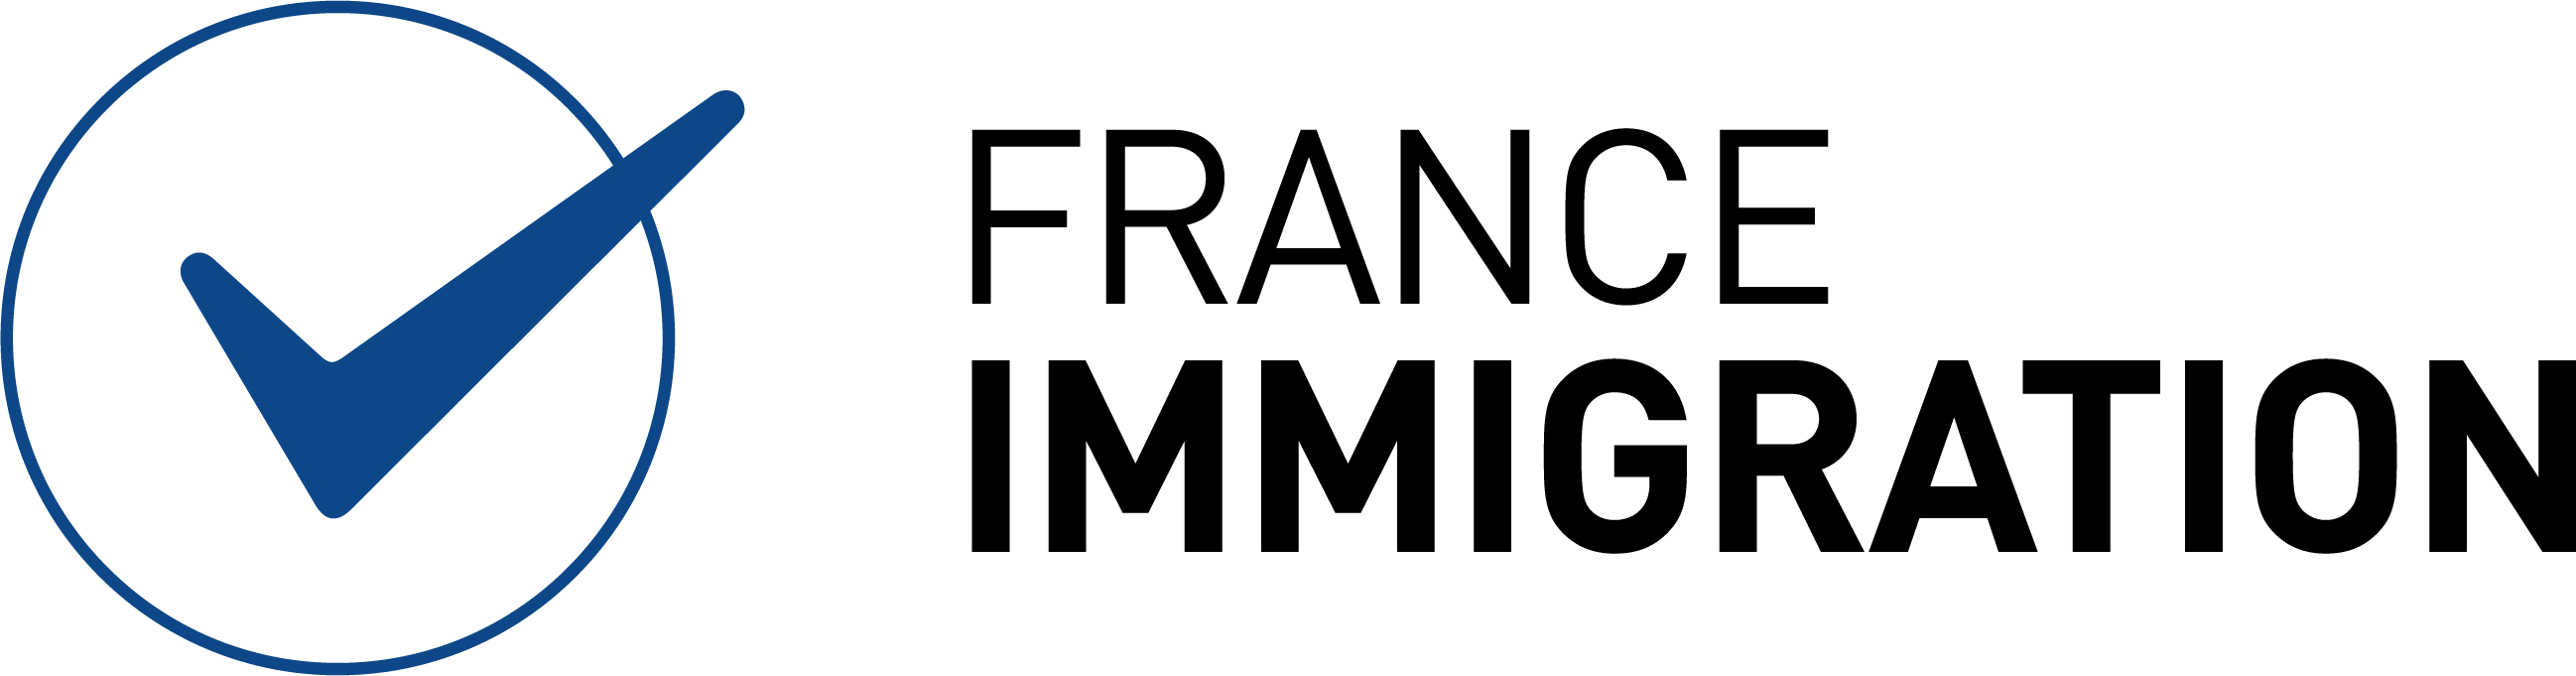 logo france immigration